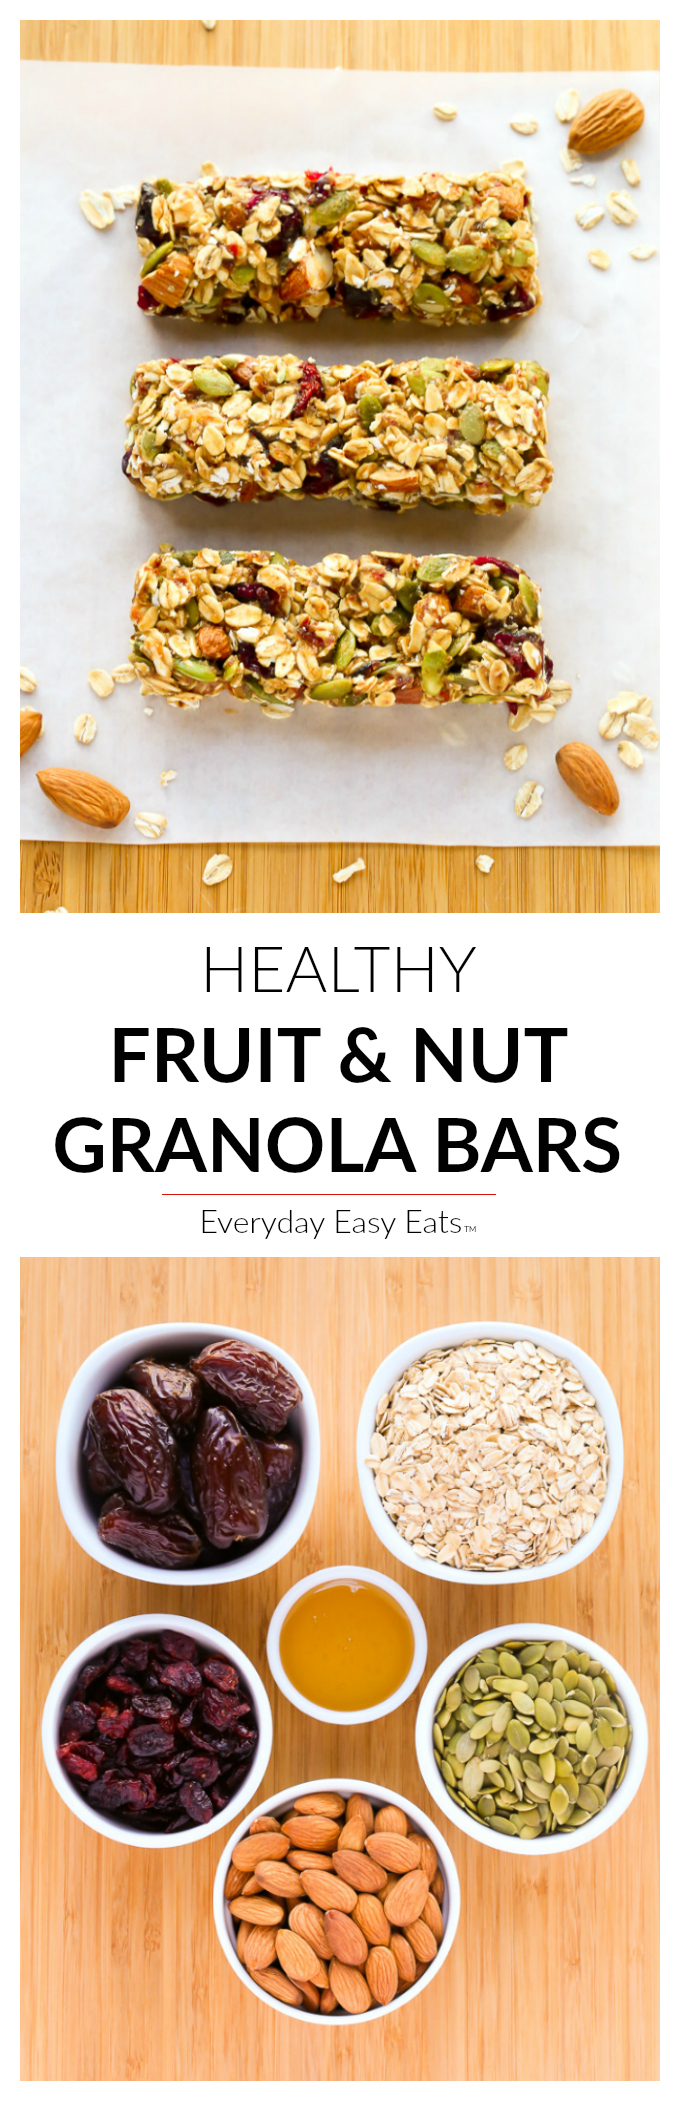 No Bake, 6 Ingredient, Healthy Fruit And Nut Granola Bars! |